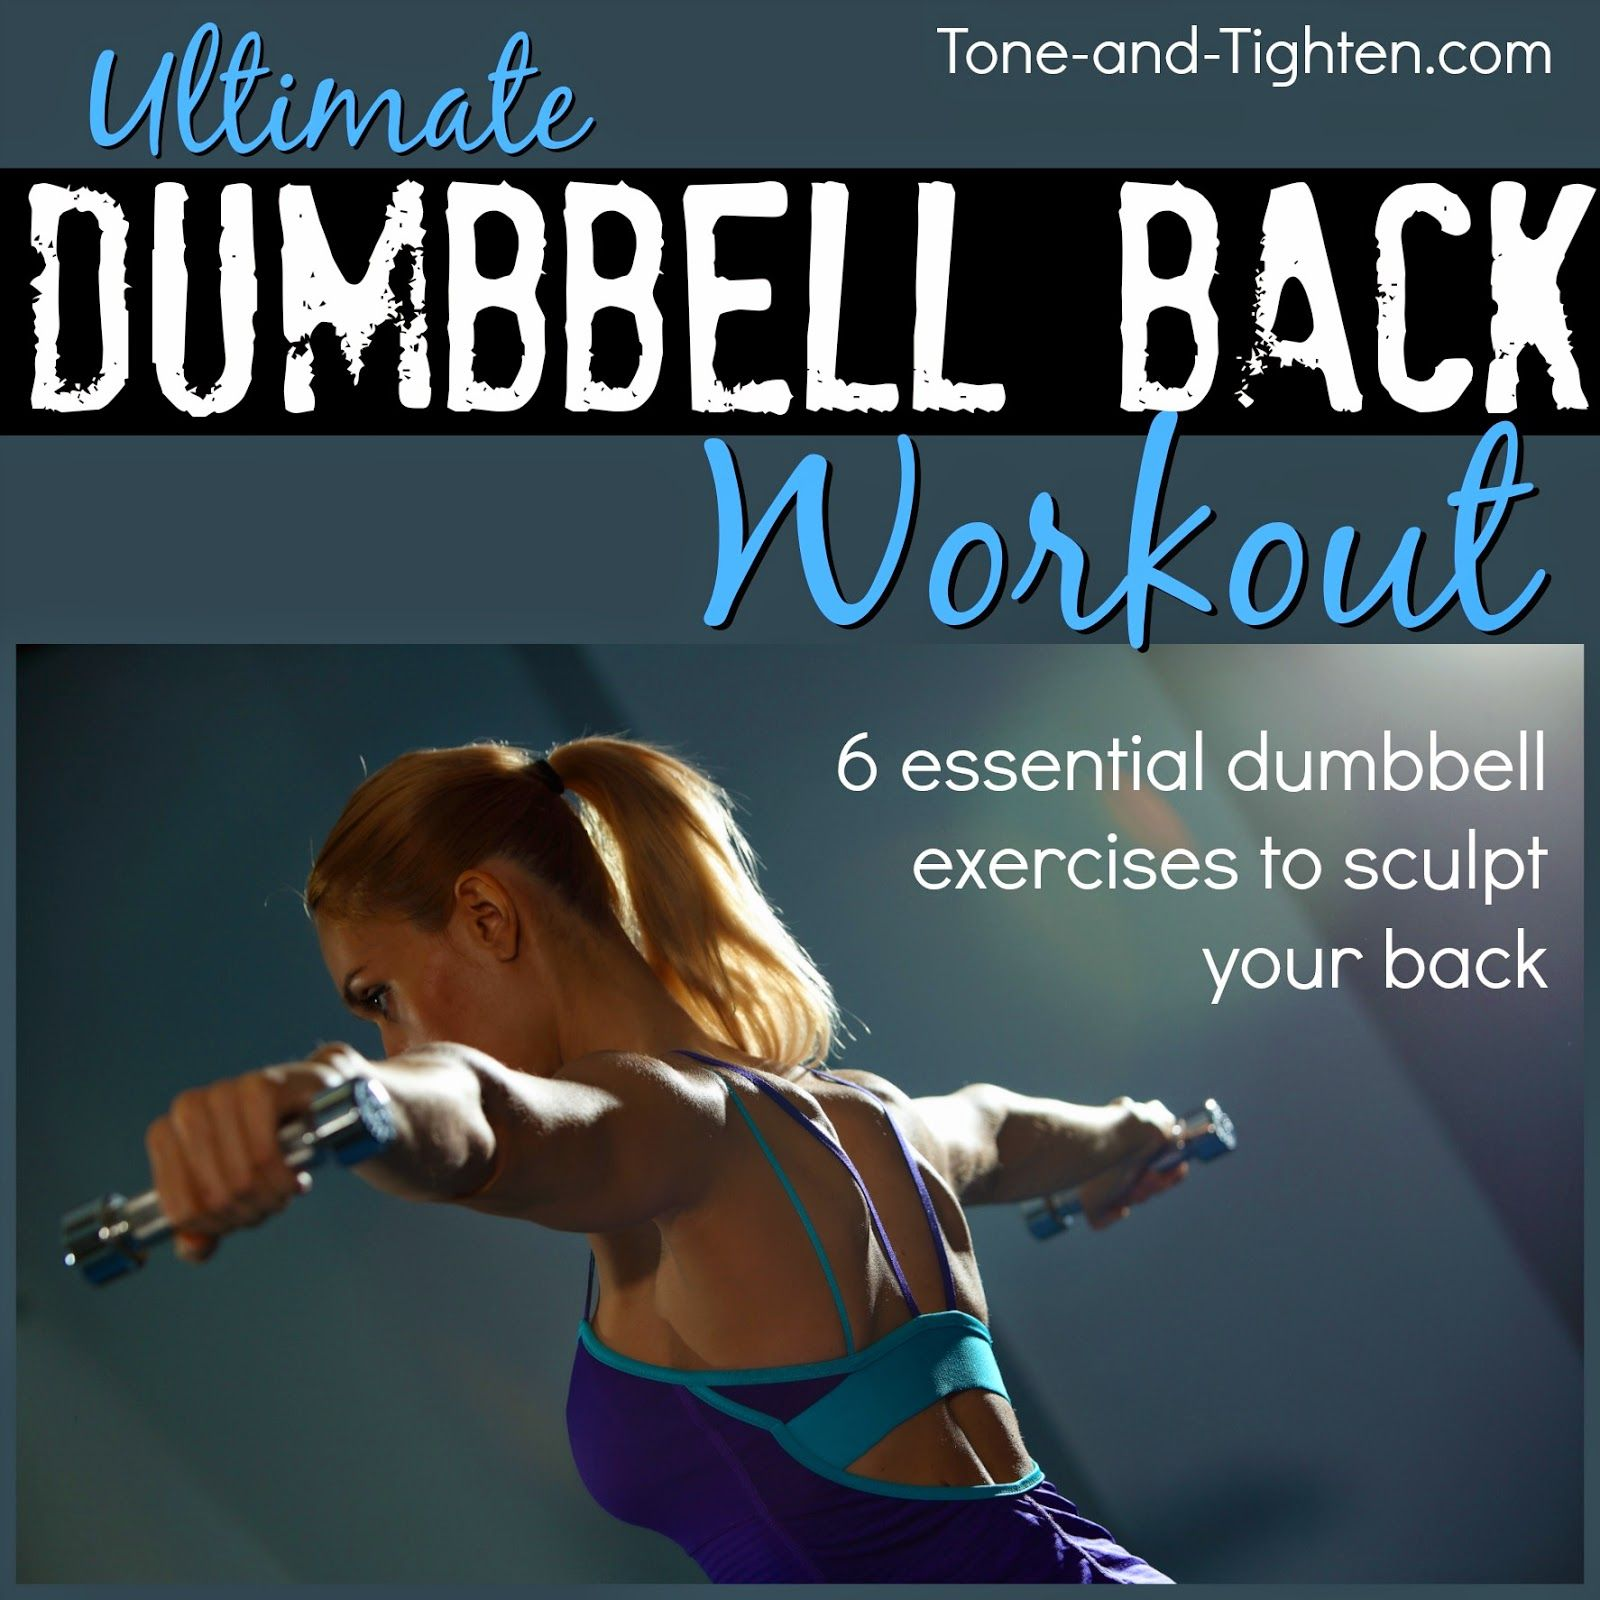 Free Weight Dumbbell Back Exercises: Best Dumbbell Exercises For Your